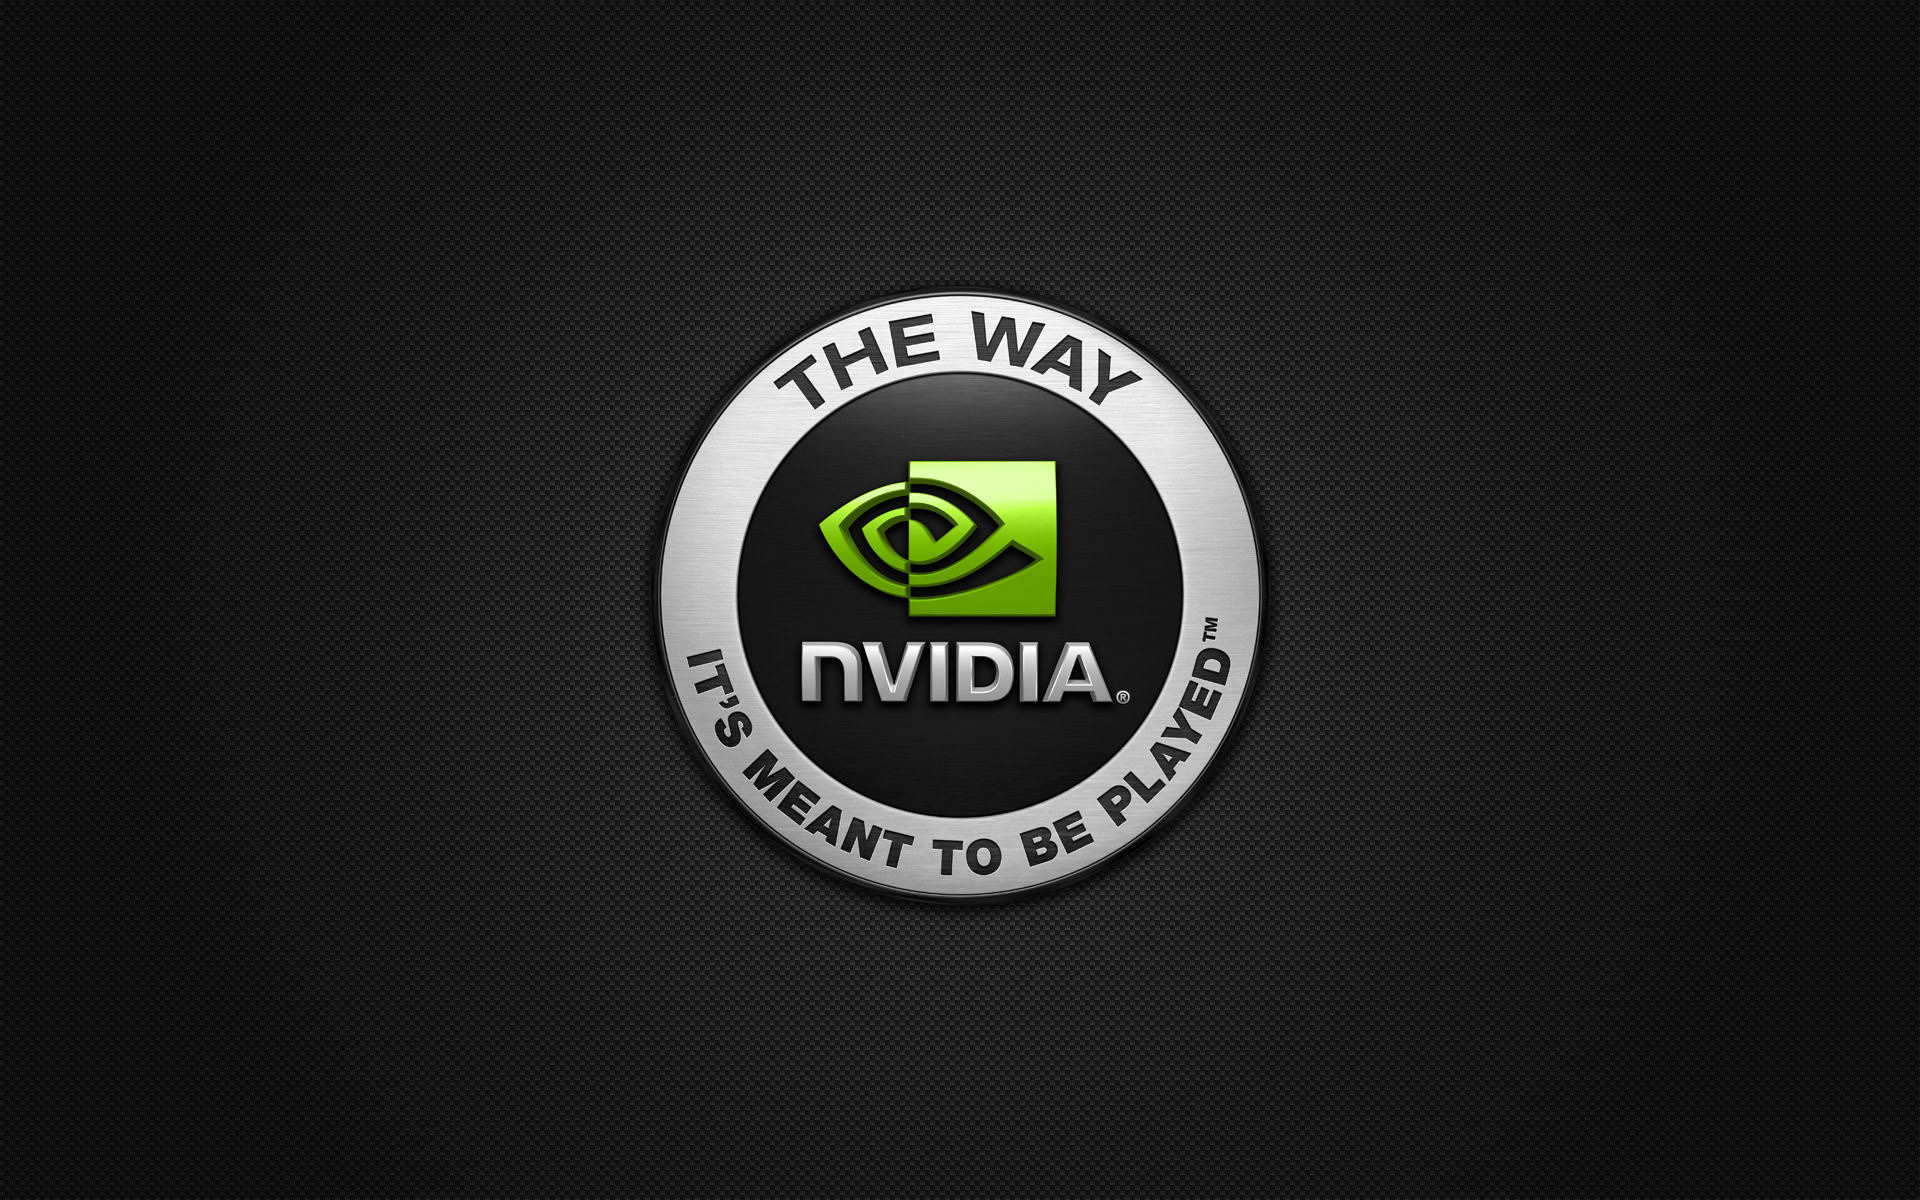 NVIDIA's 384 76 Drivers Crash Watch Dogs 2 on Startup